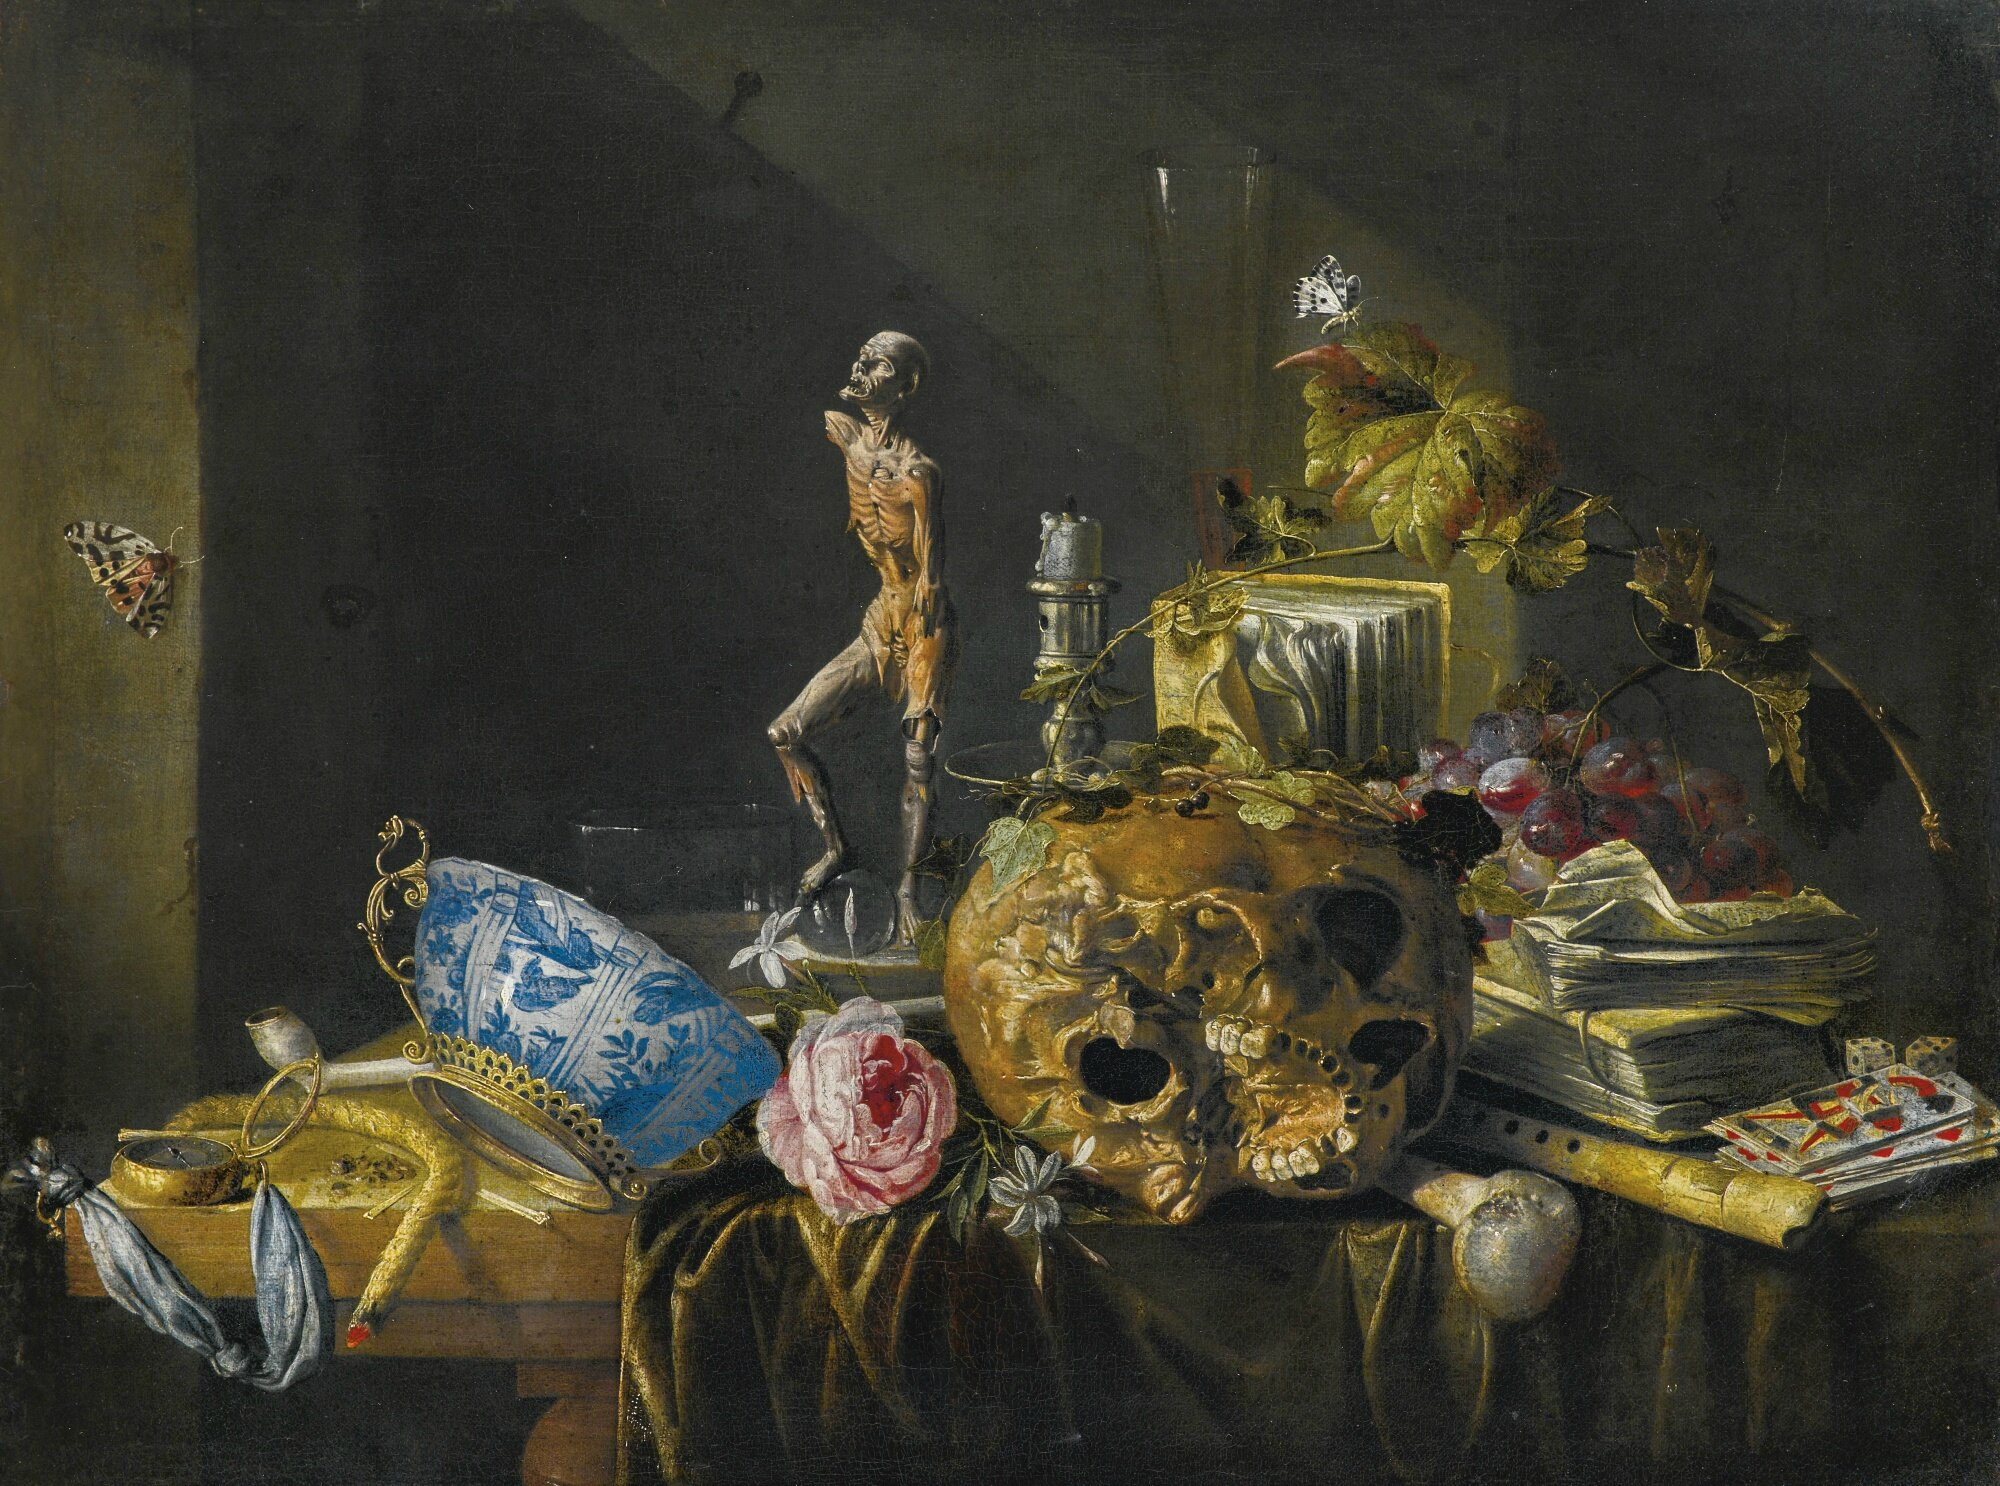 Cornelis de Heem (Leiden 1631 - 1695 Antwerpt), A vanitas still life with a skull and an écorché, on a draped table